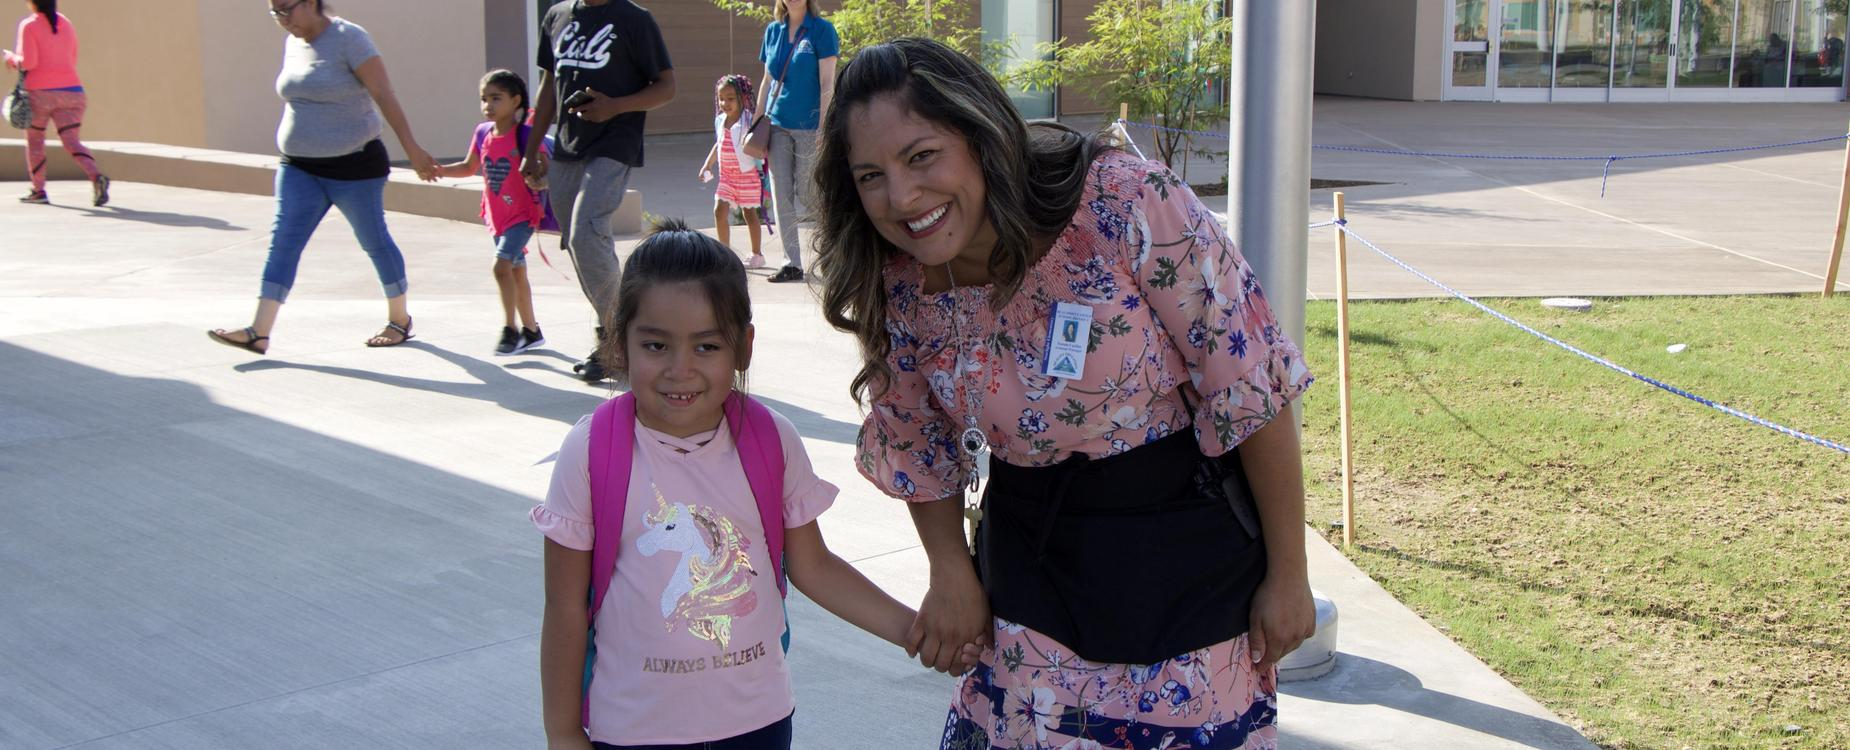 Starlight Elementary Assistant Principal walking student to class